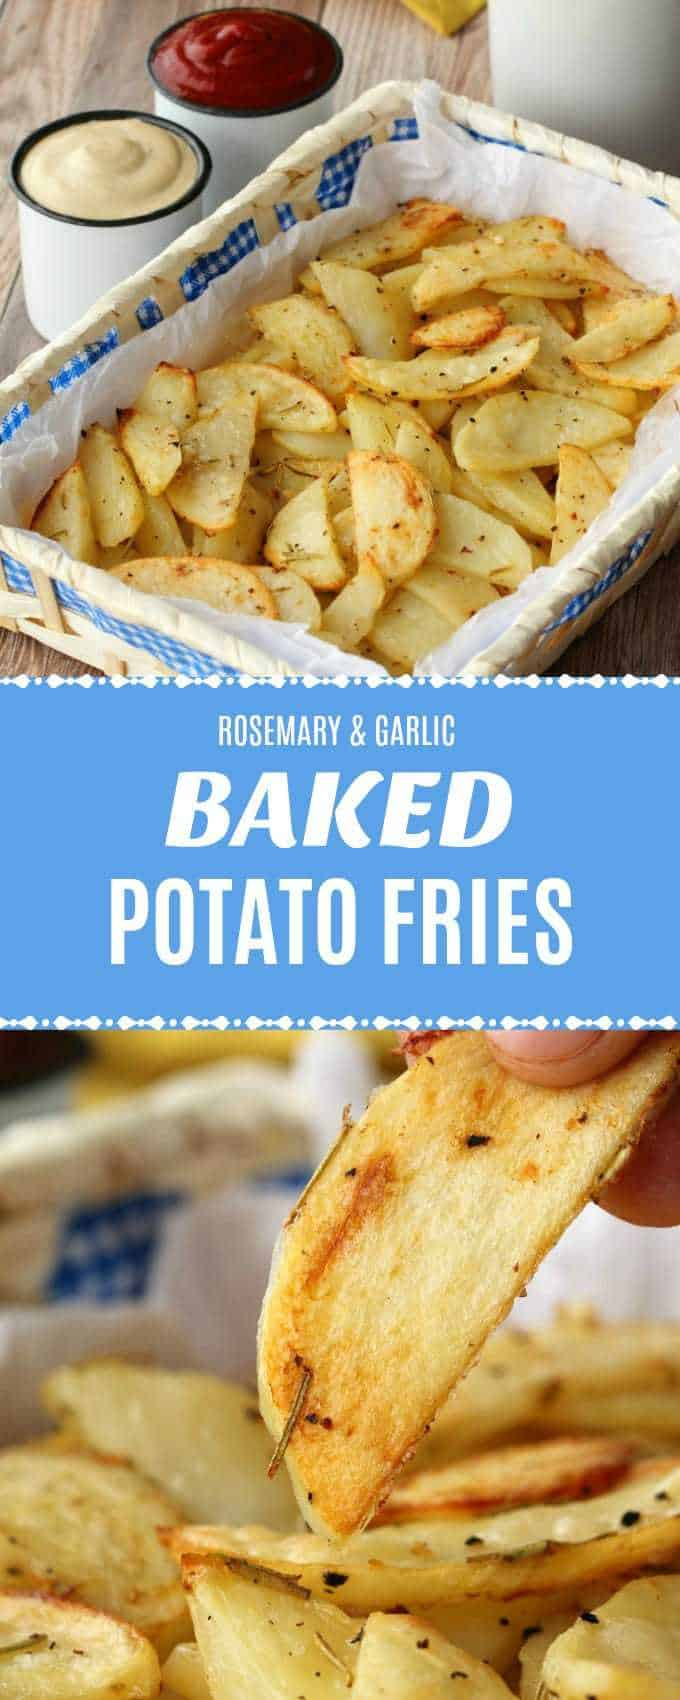 Spicy garlicky baked potato fries! These easy and delicious fries are fabulous served with ketchup or cashew sour cream and a wonderful alternative to regular fries!| lovingitvegan.com